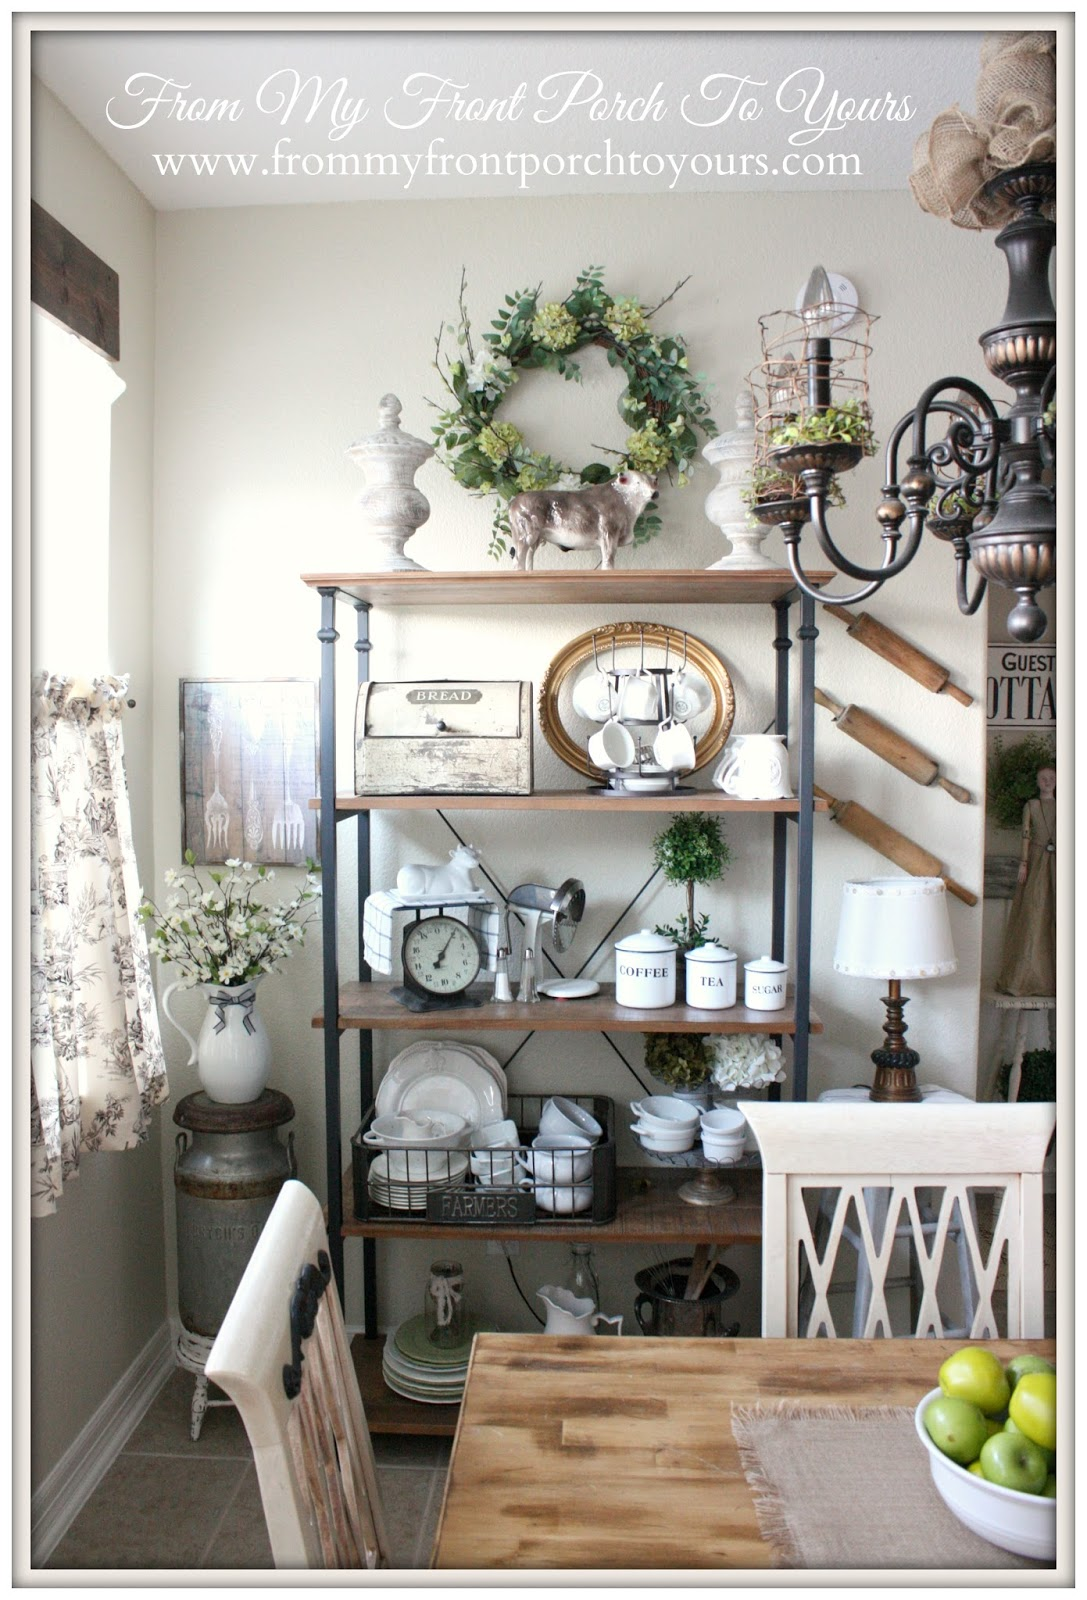 French Farmhouse Kitchen-How I Found My Style Sundays- From My Front Porch To Yours